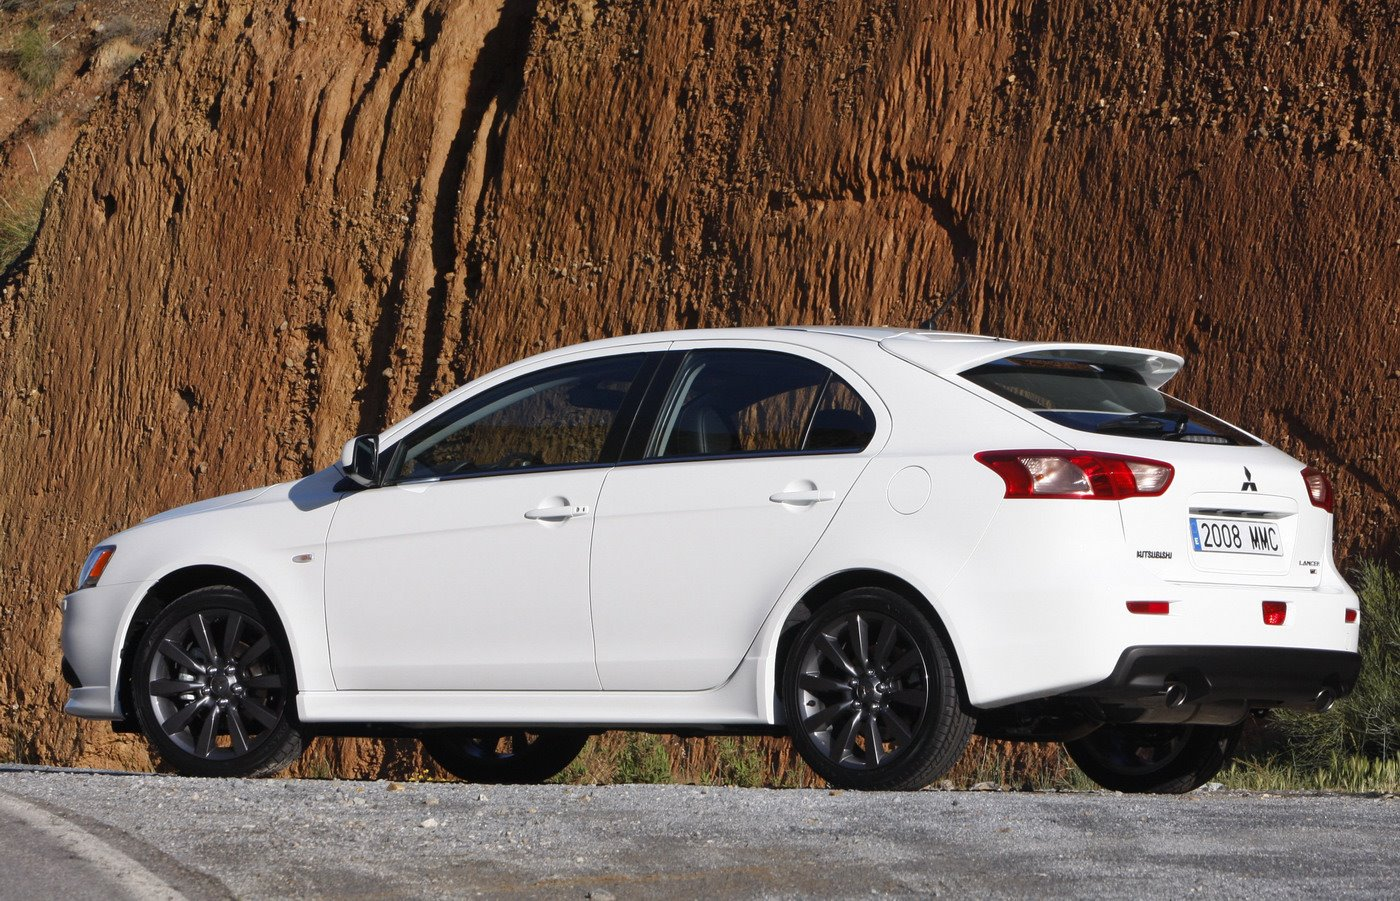 100 Reviews Mitsubishi Lancer Sportback 2015 on margojoyocom